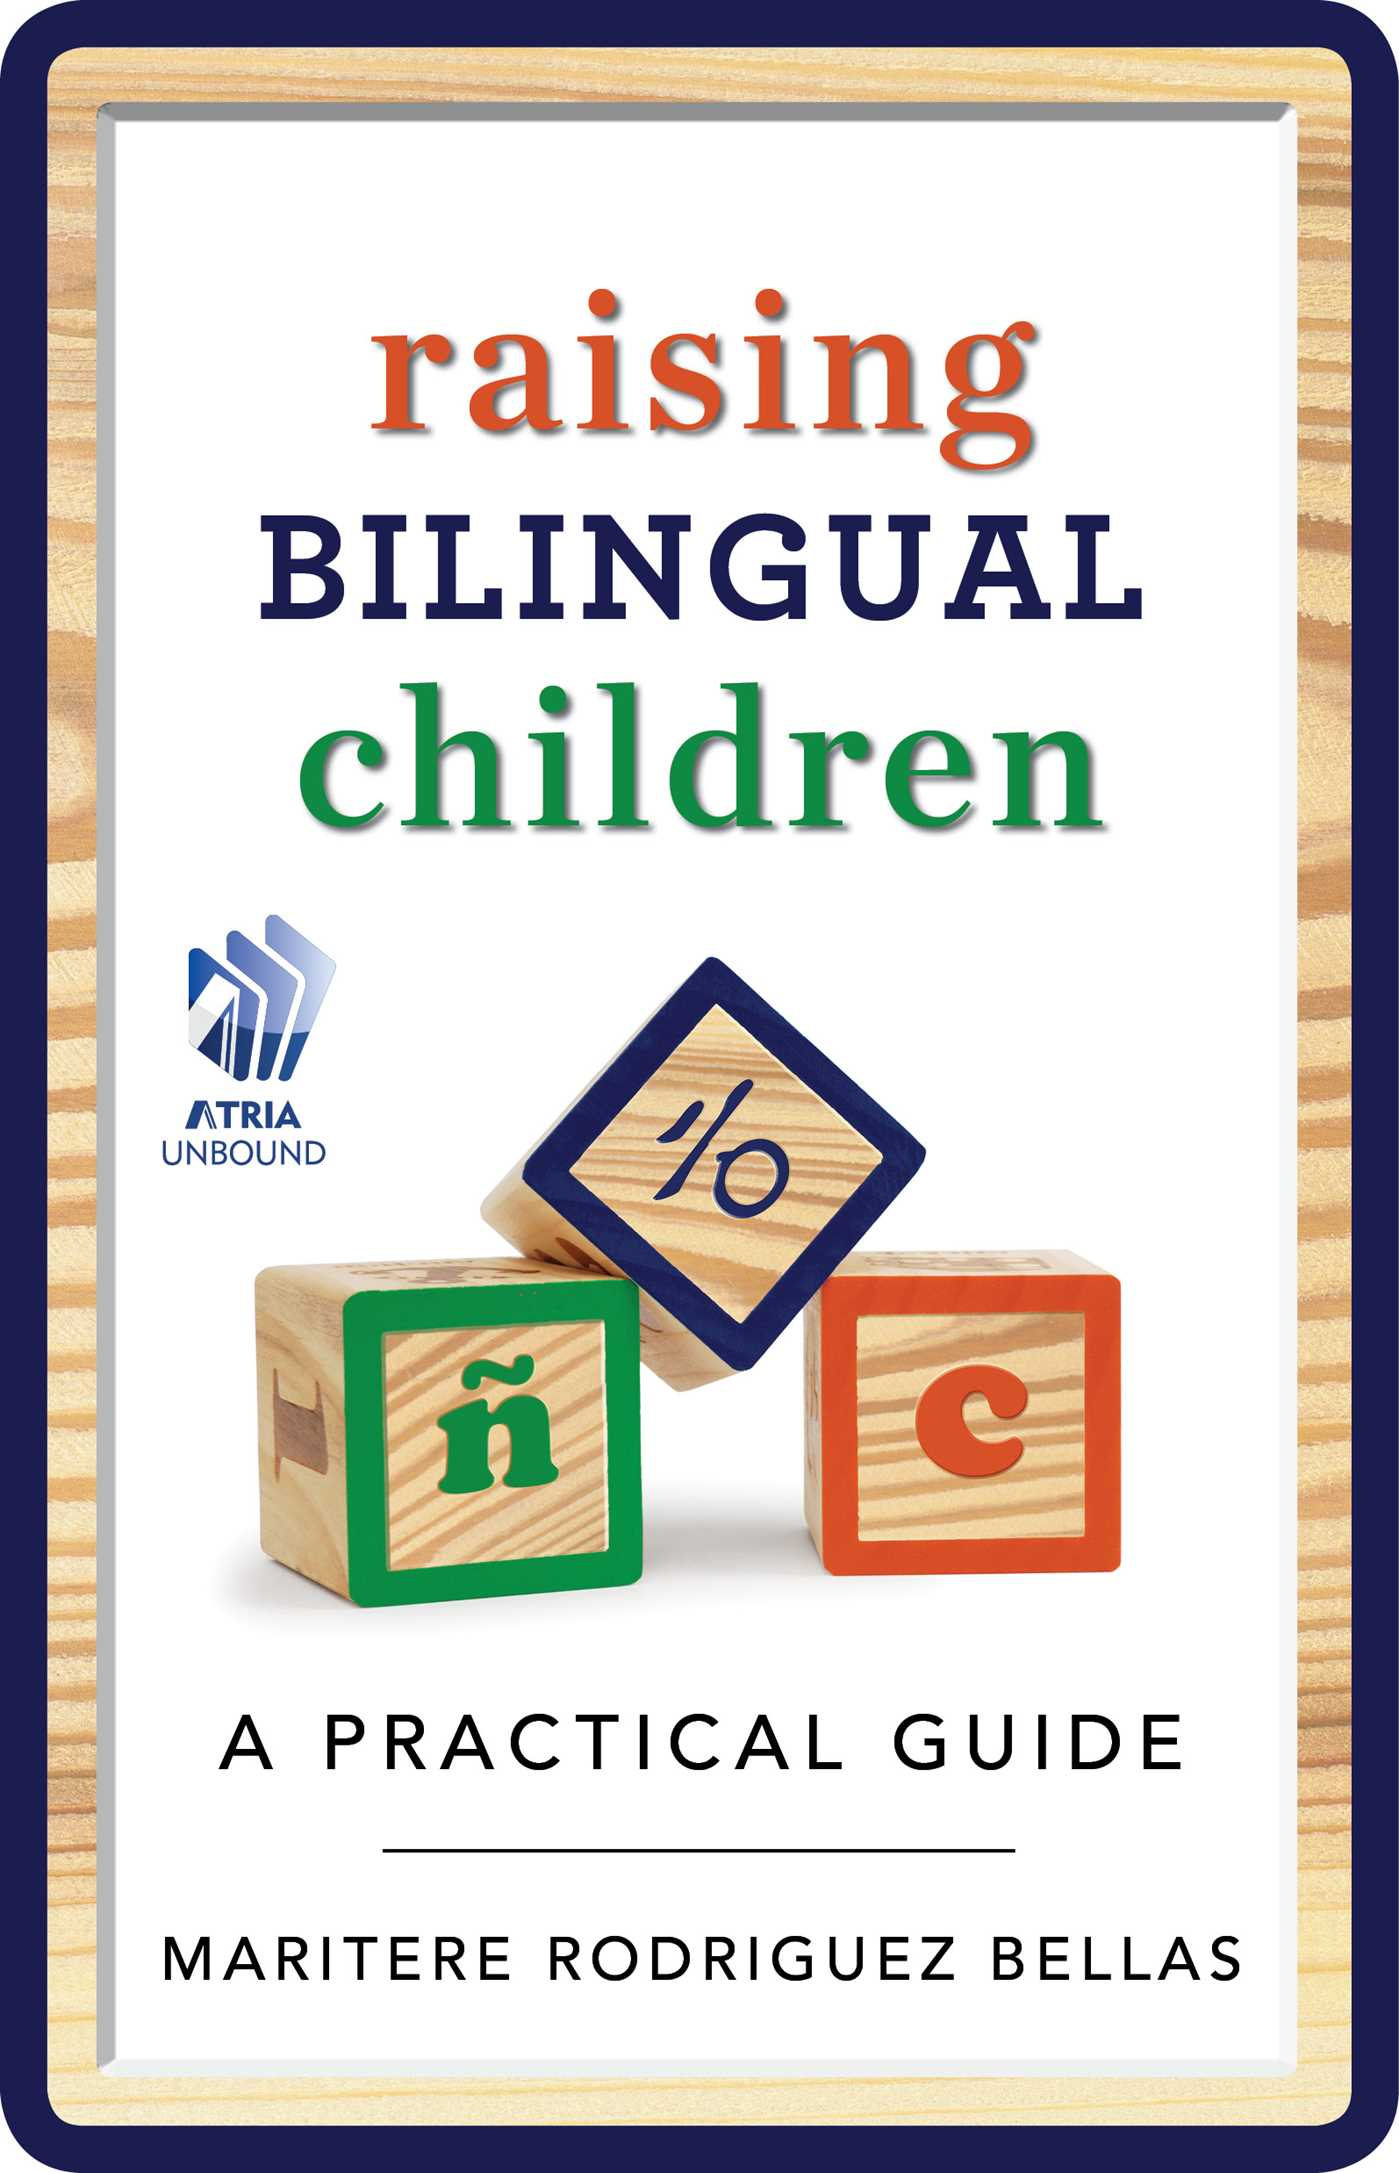 Raising-bilingual-children-9781476753256_hr